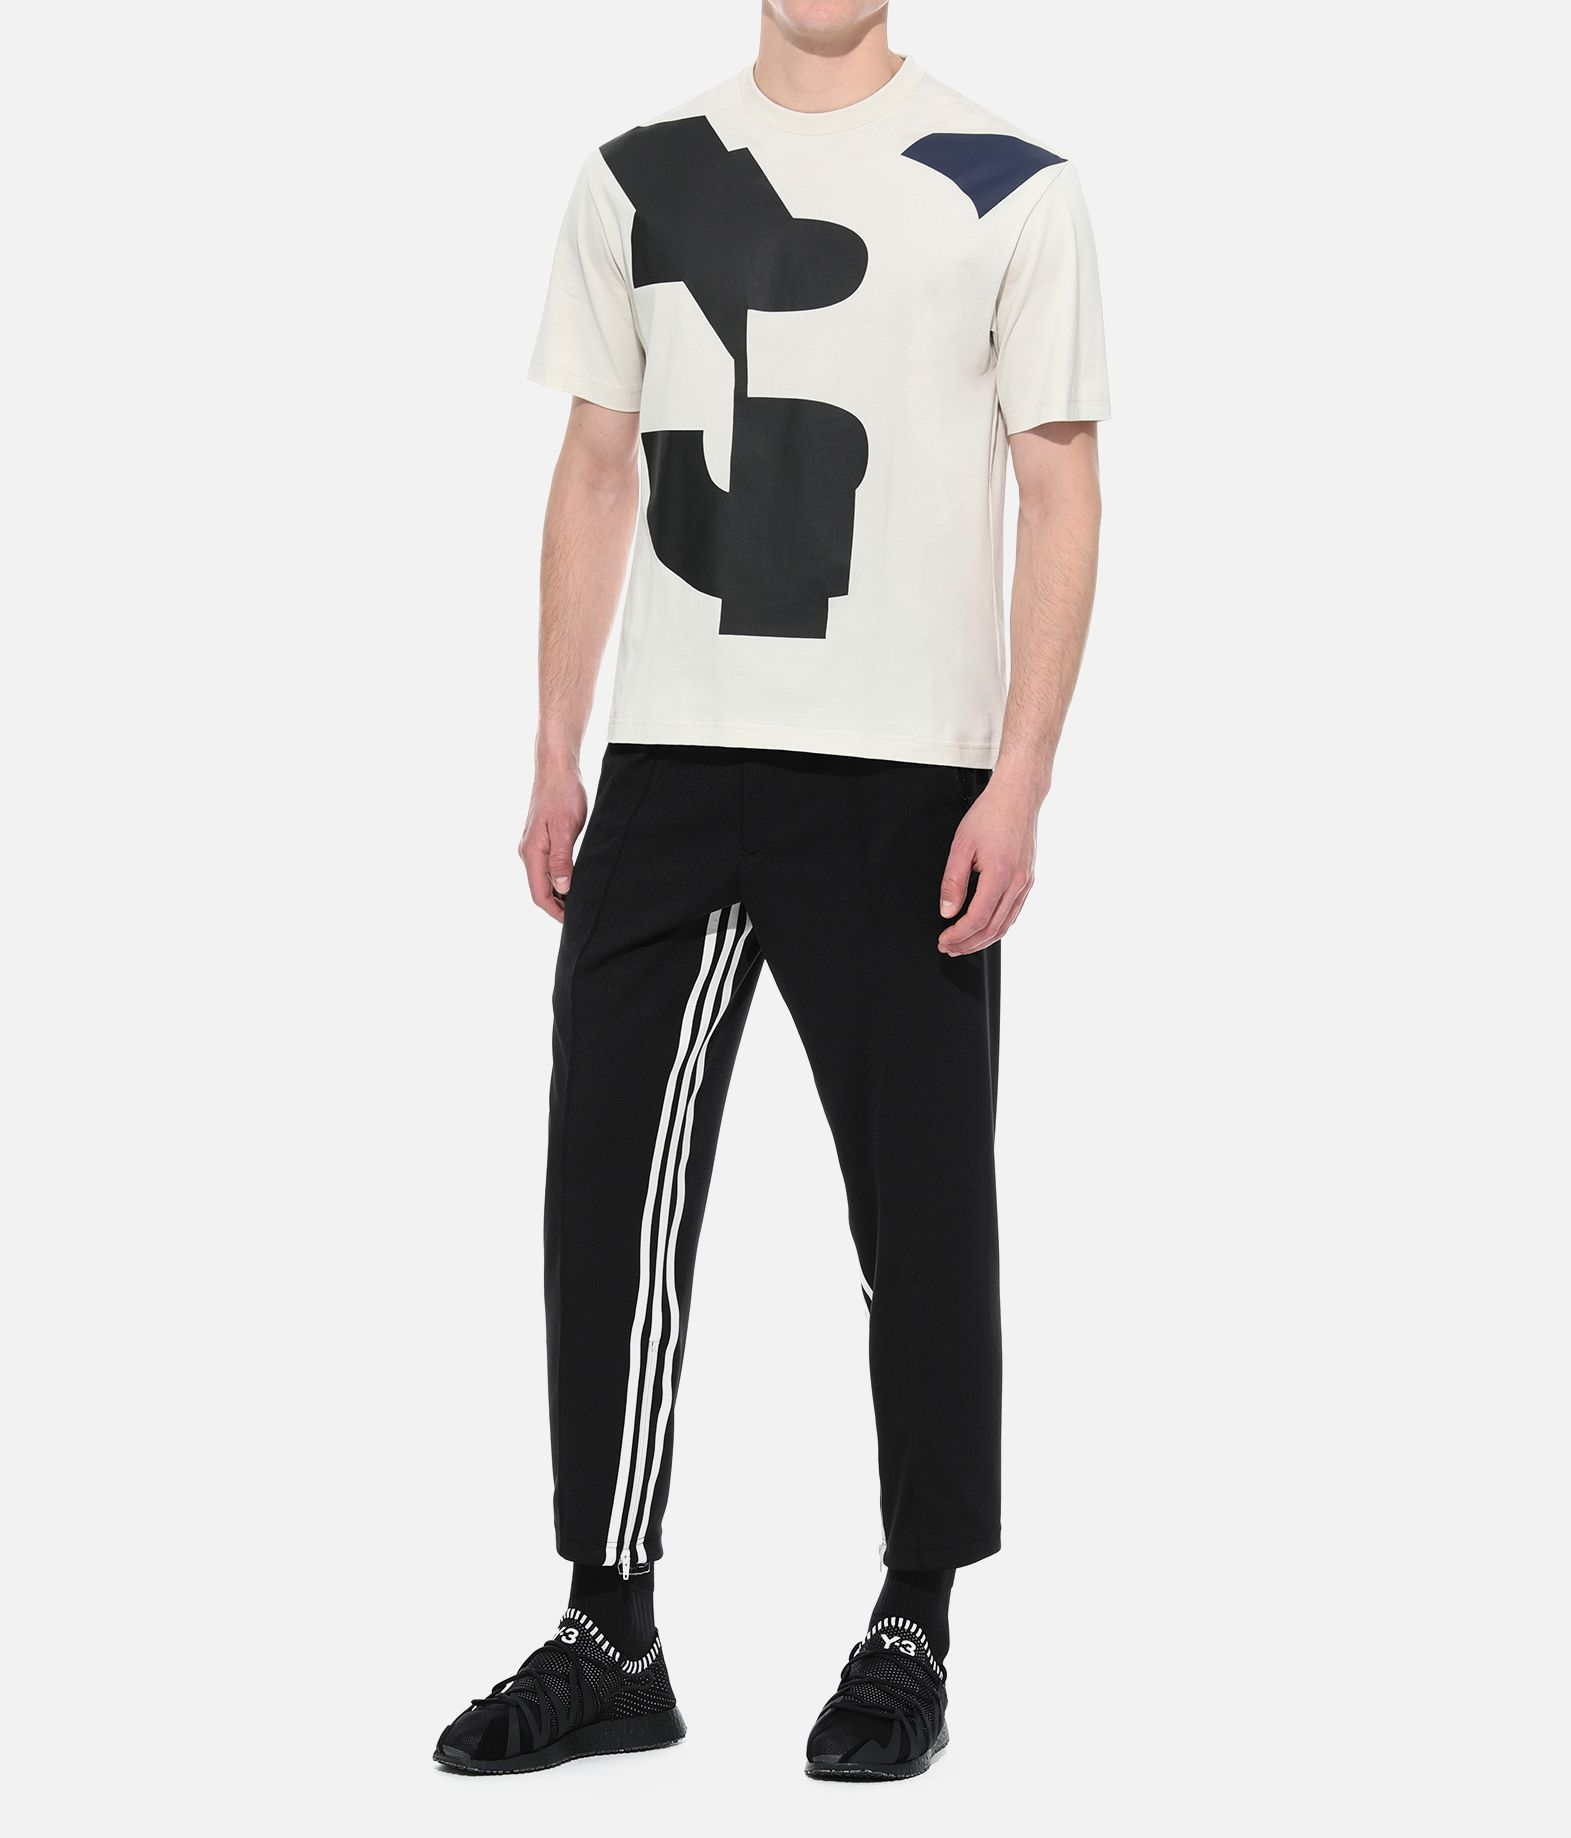 Y-3 Y-3 GRAPHIC TEE T シャツ メンズ a